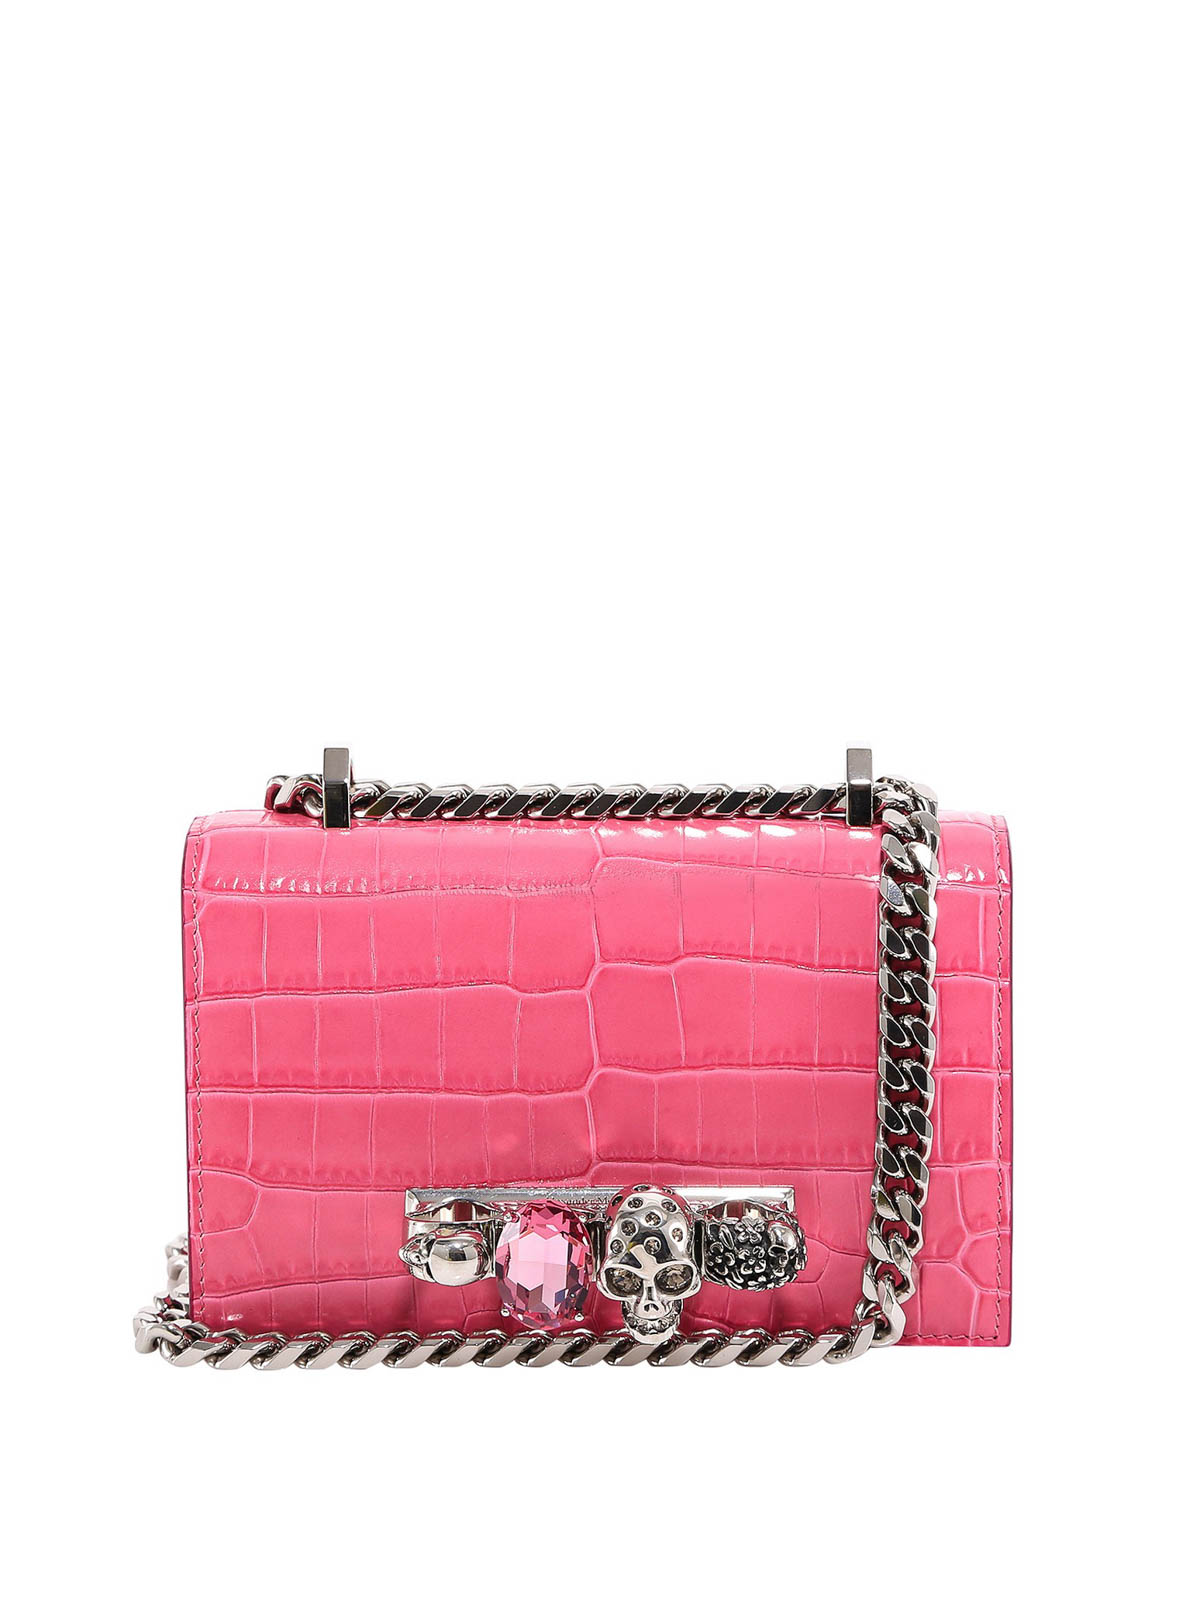 Alexander Mcqueen Leathers CROCO PRINT LEATHER CROSS BODY BAG